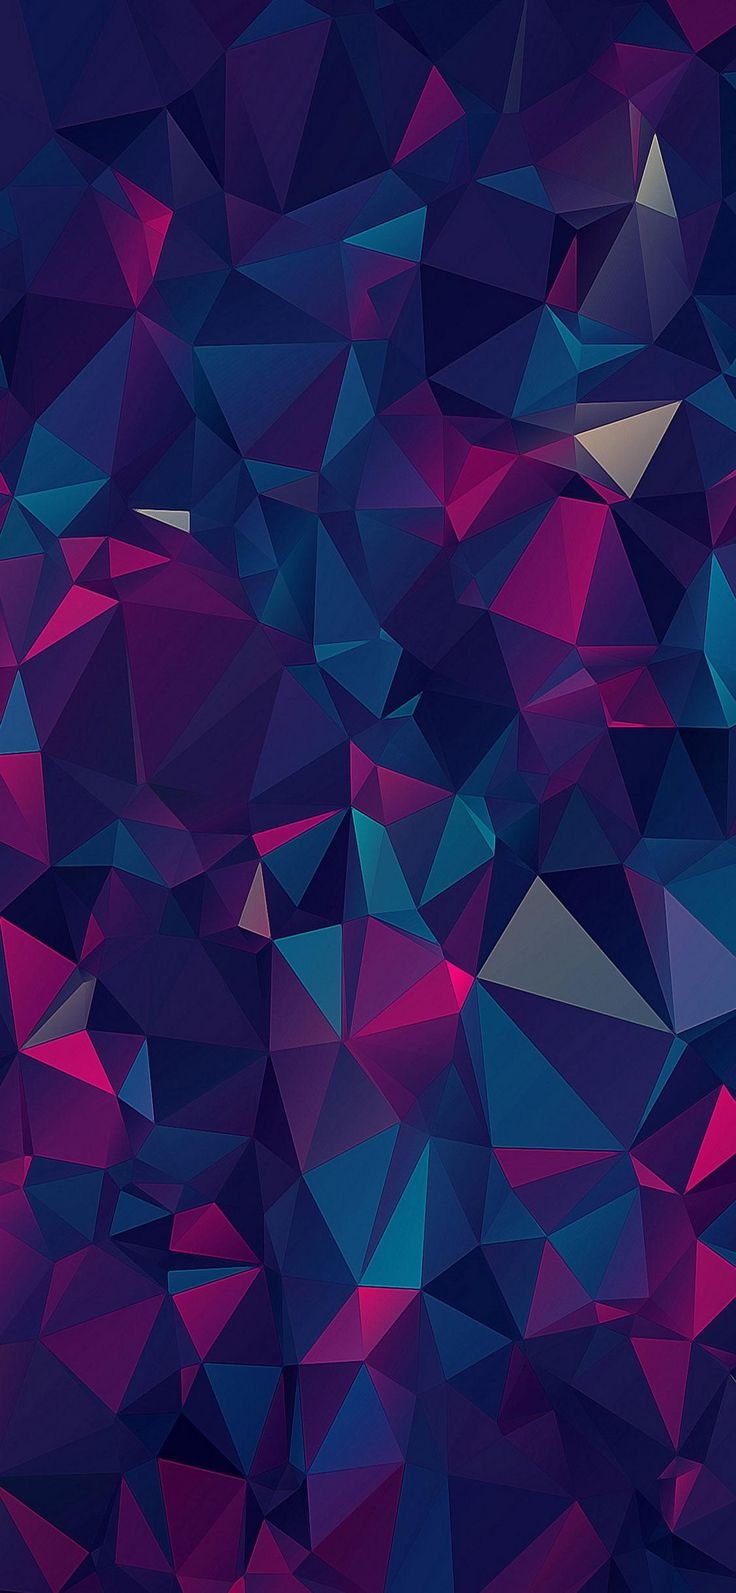 Triangle shape abstract mobile wallpaper   Iphone 5s ...